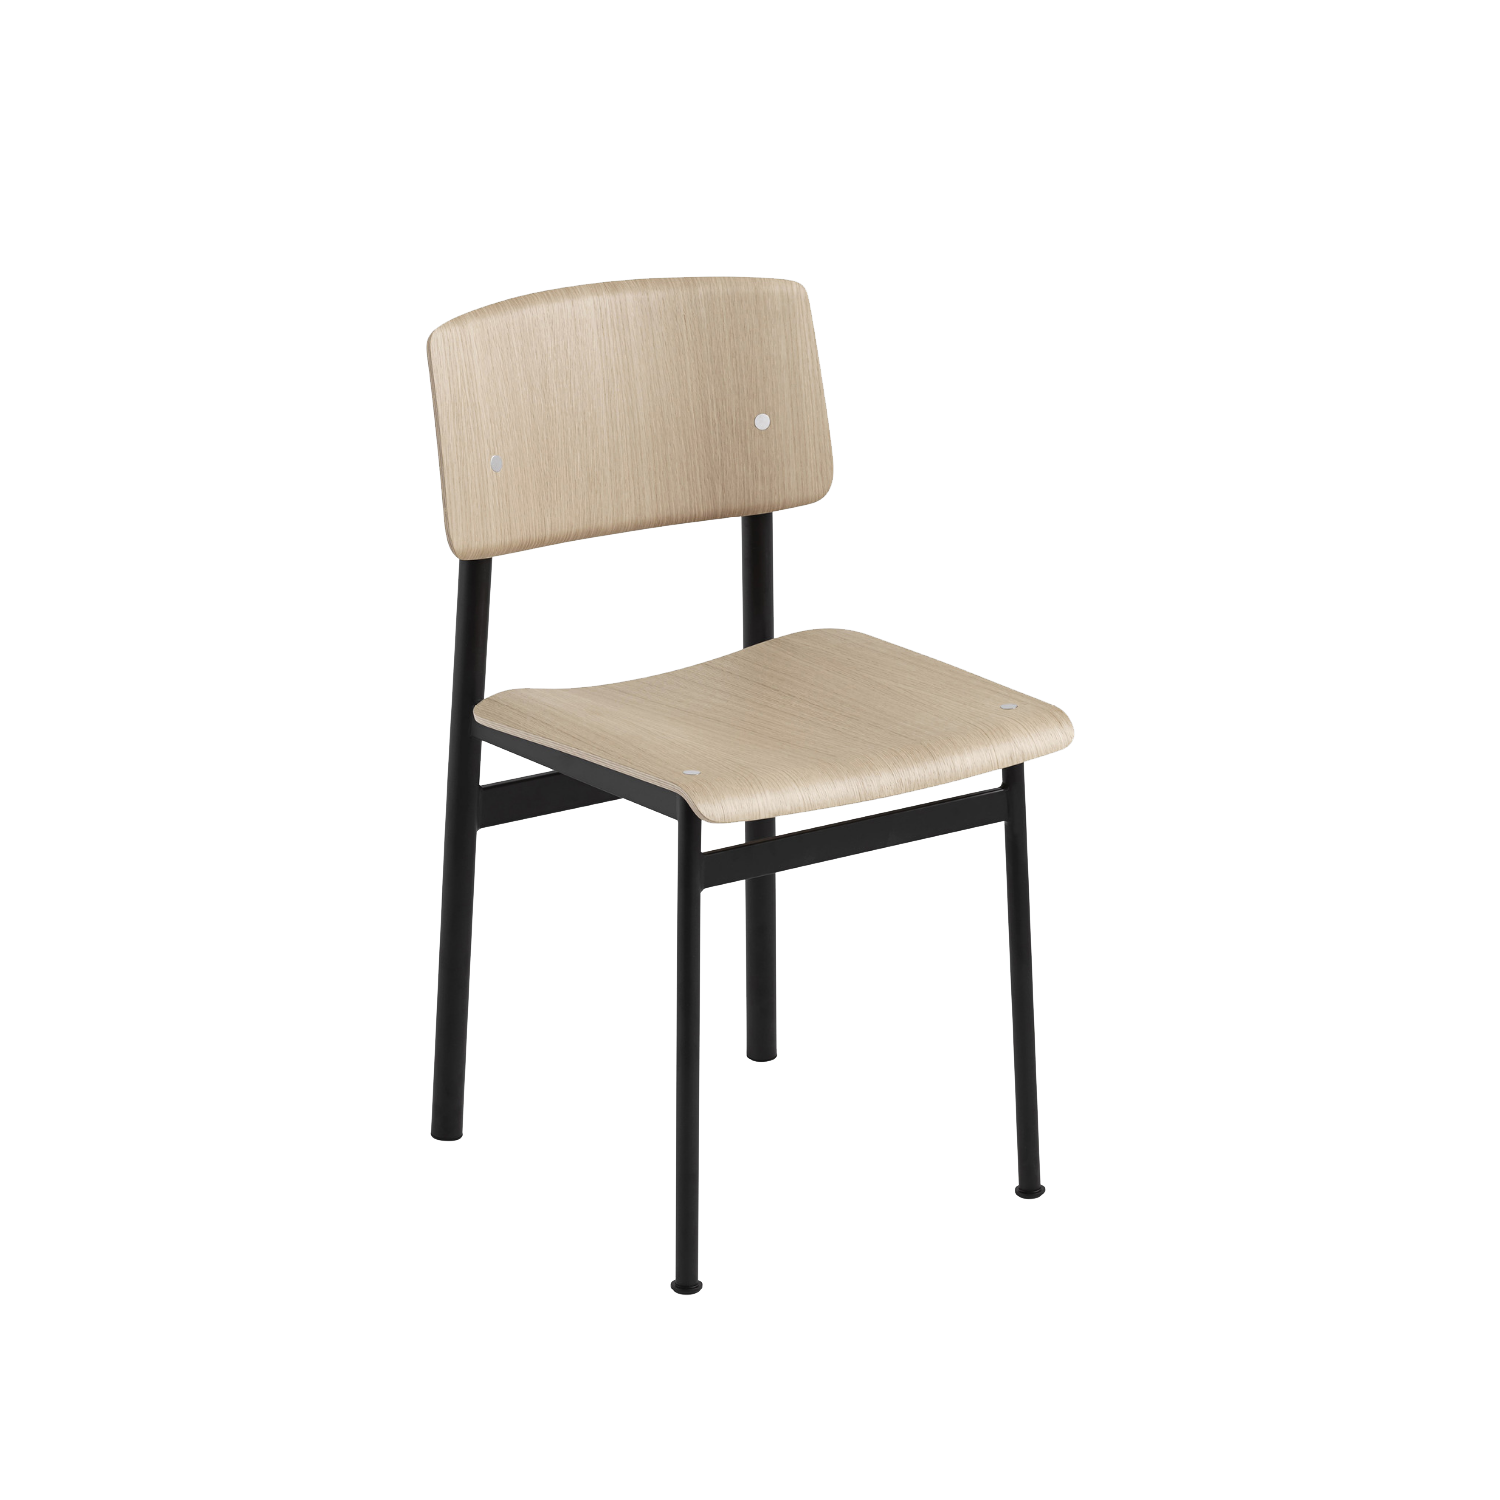 Wood and Metal Chair 1